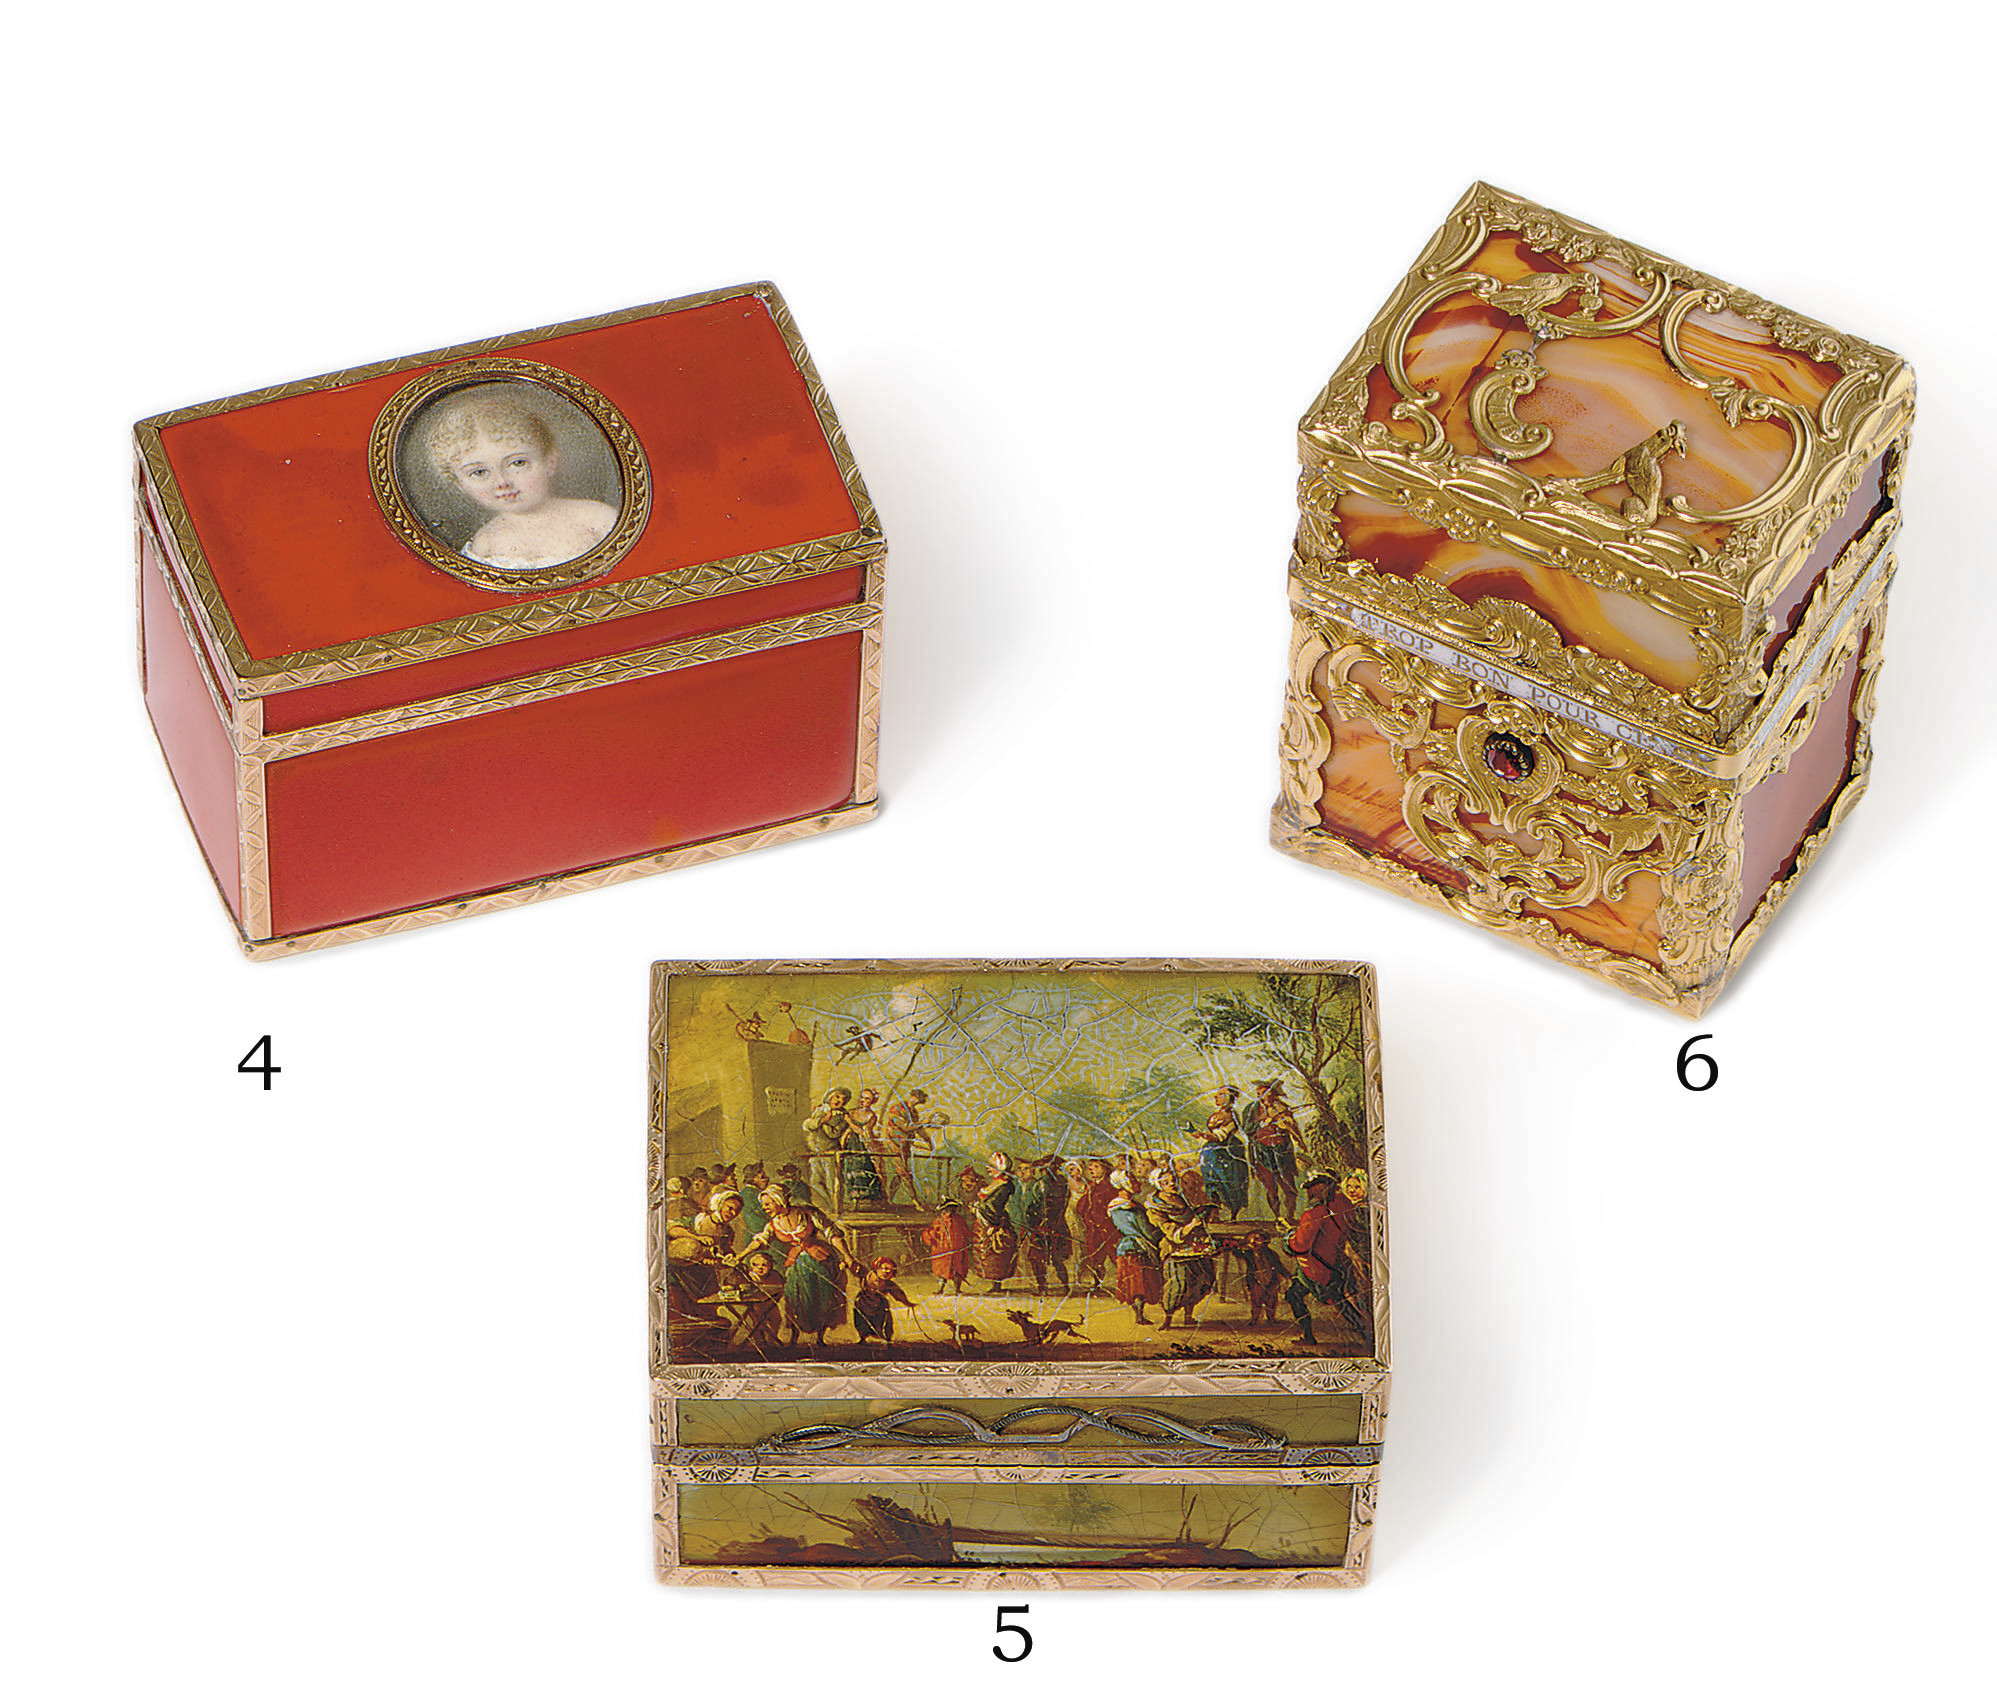 A FRENCH GOLD AND RED LACQUER SNUFF BOX WITH PORTRAIT MINIATURE**